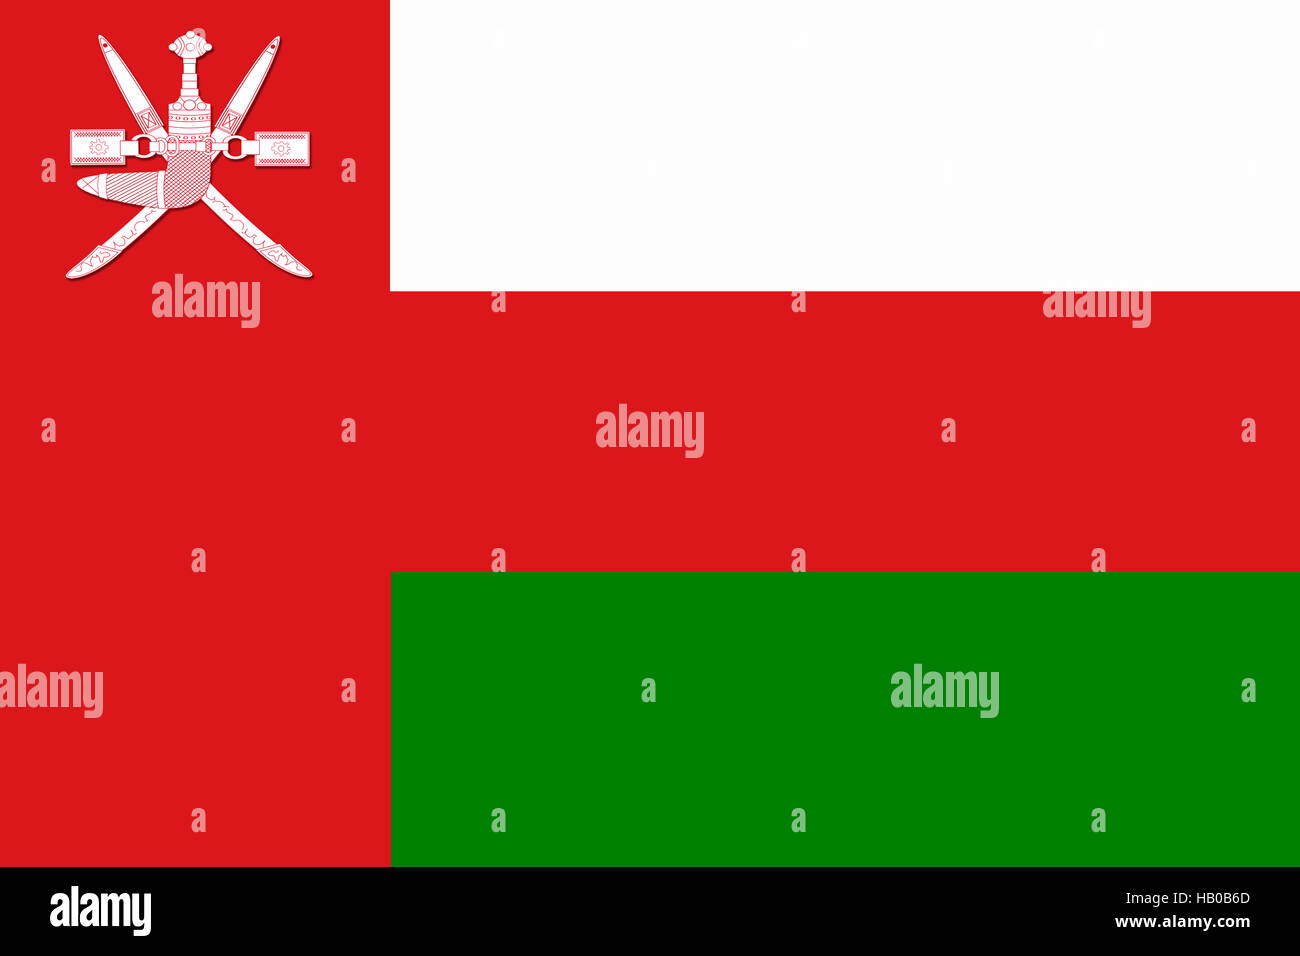 National flag of Sultanate of Oman - Stock Image